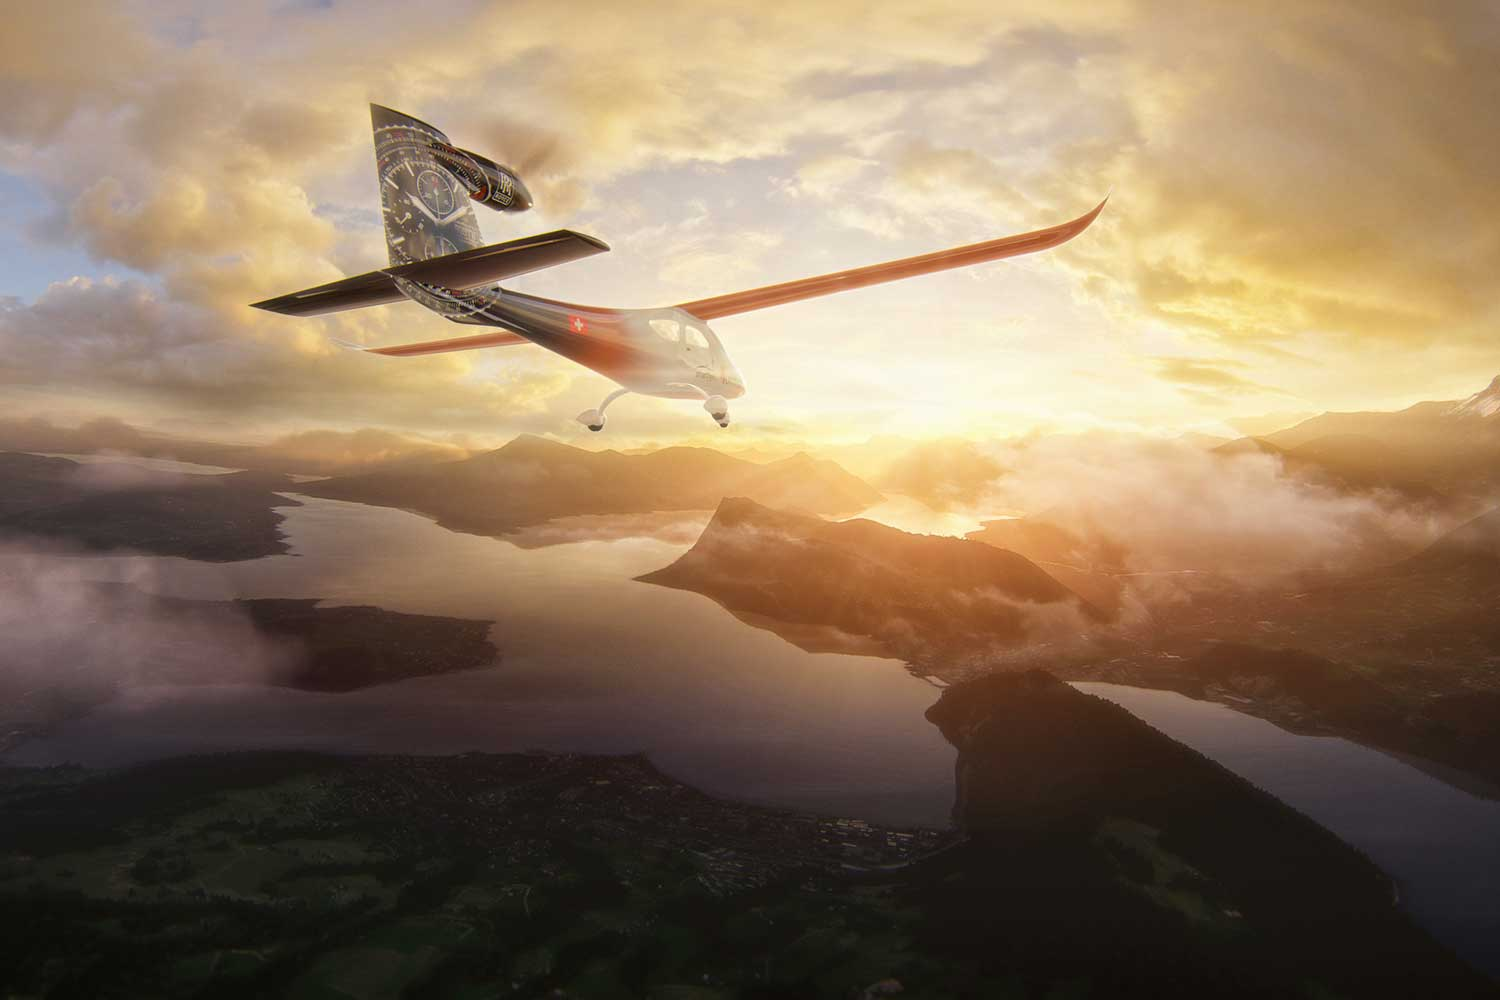 The award-winning design of the prototype SFX1 is slated to begin production for the first hybrid-electric engines in airspace in 2023.